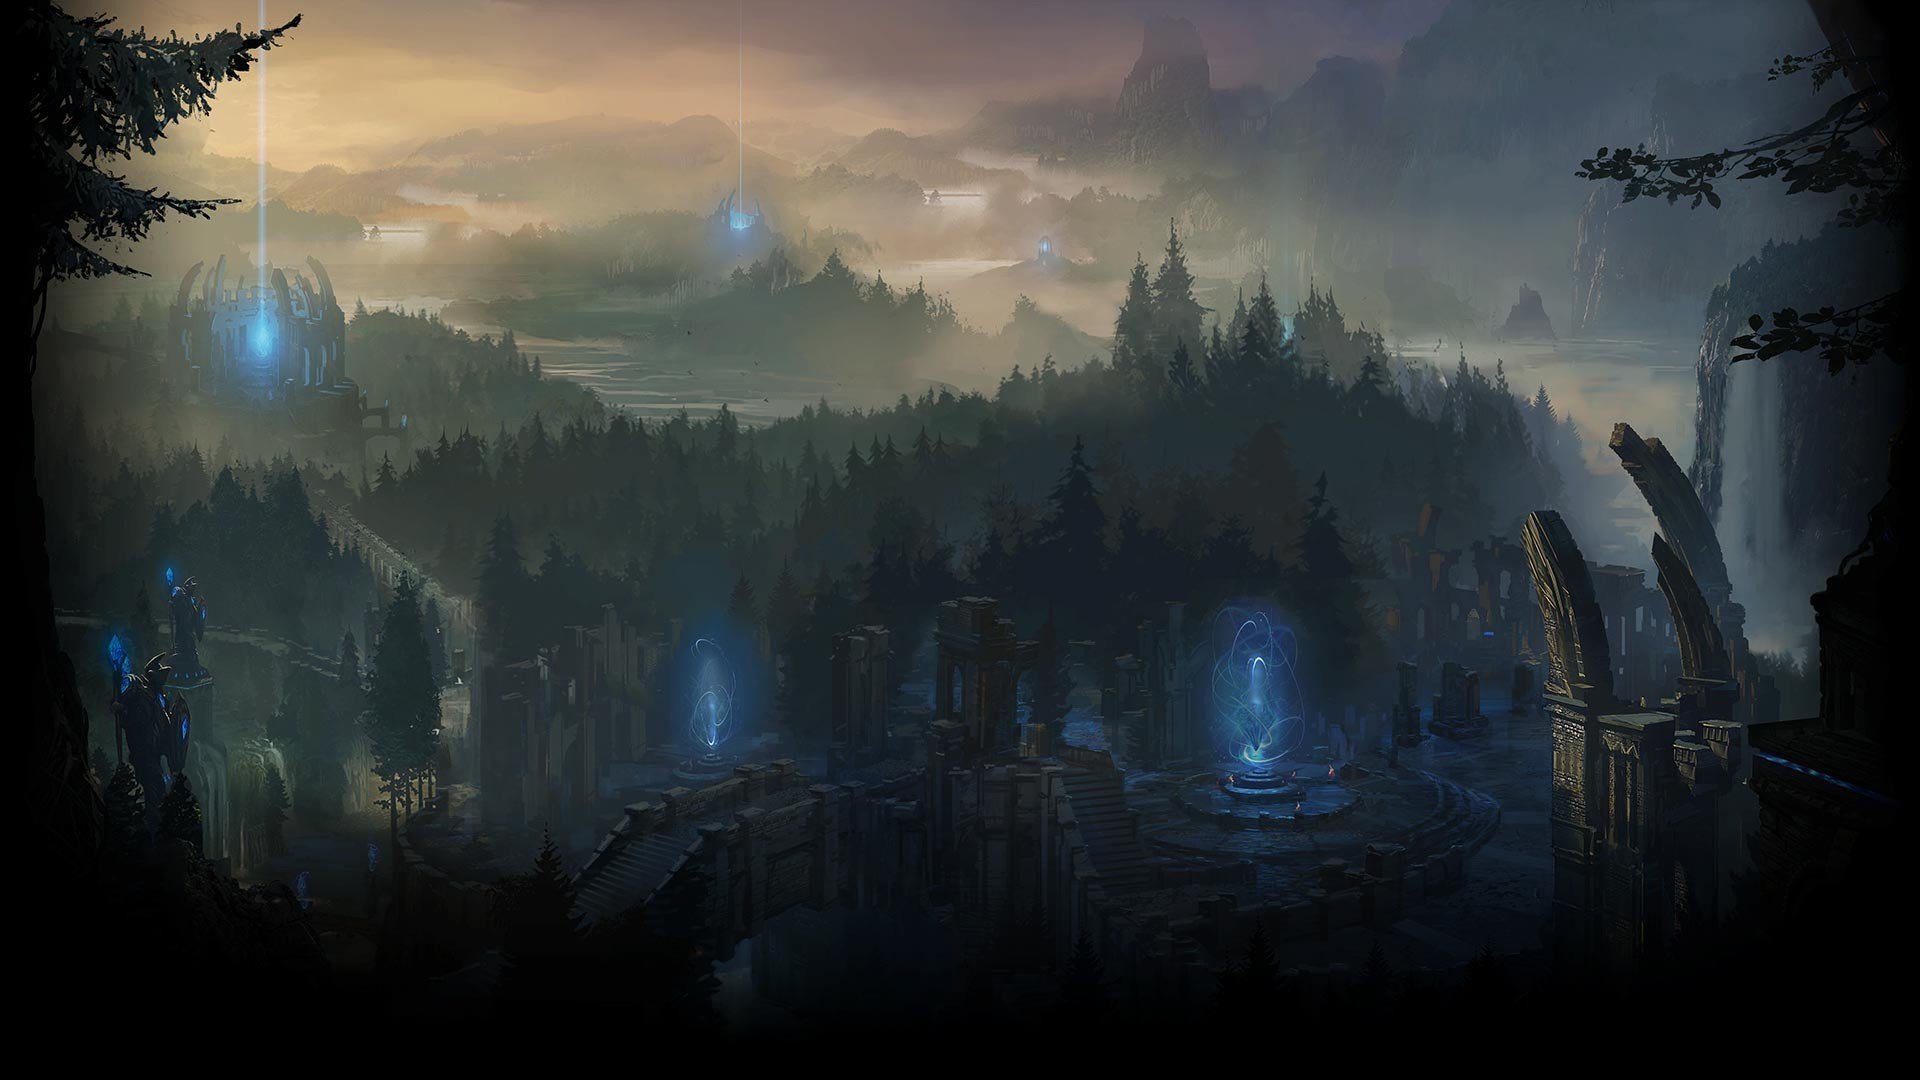 Summoners Rift Wallpaper 82 images 1920x1080